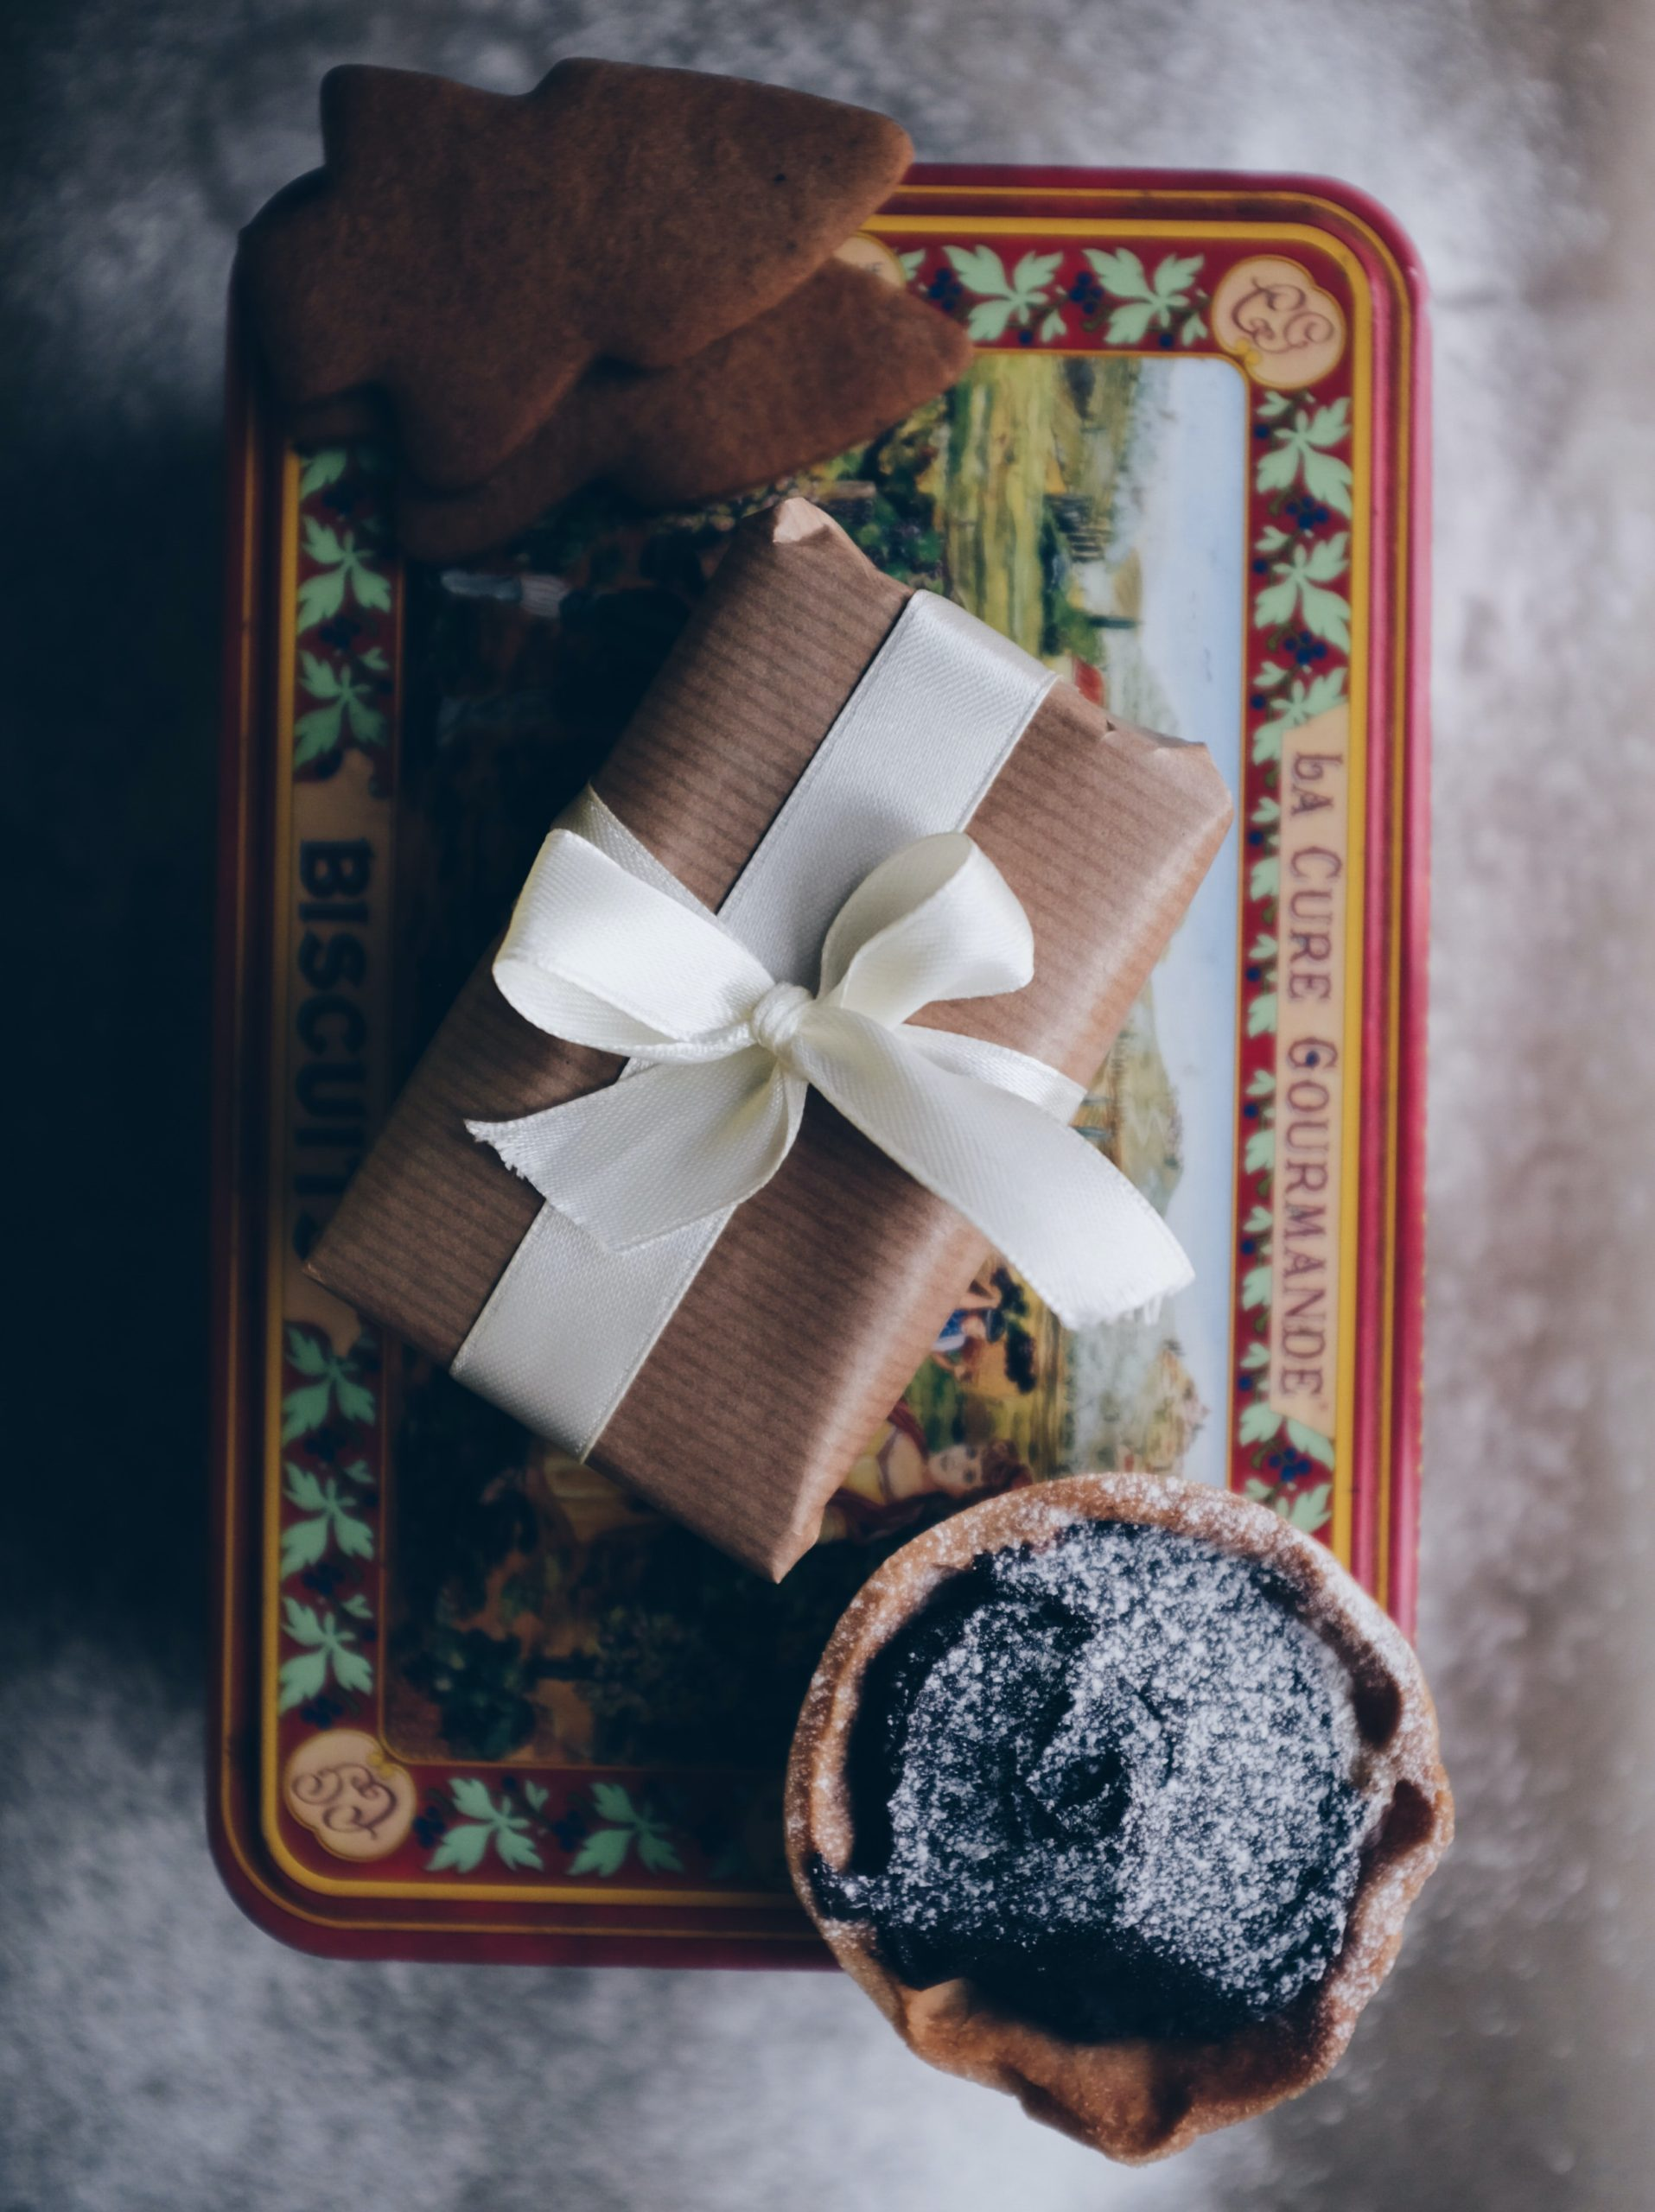 cozy gift box and baked goods in a brown and white theme